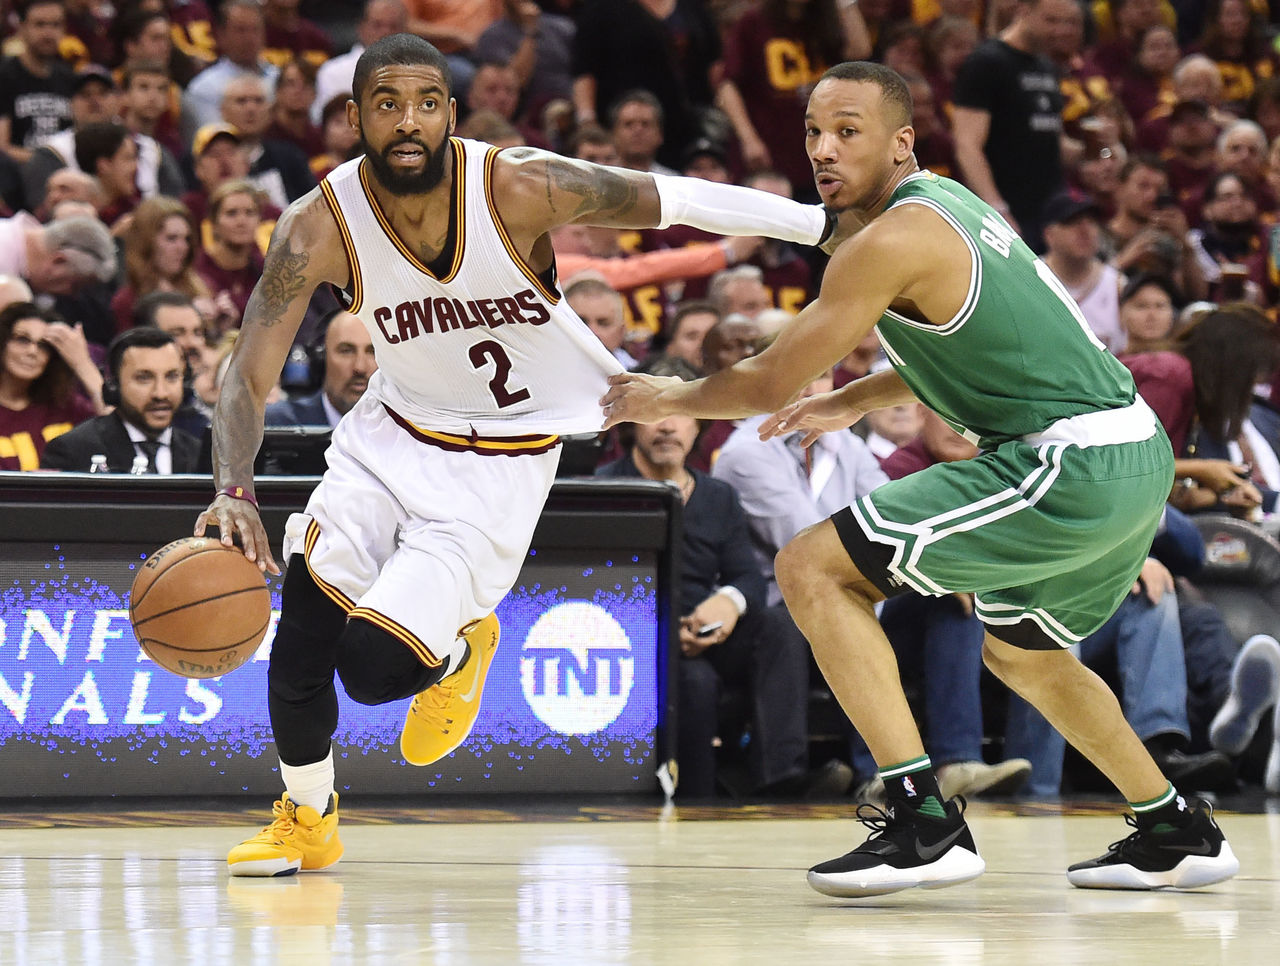 Cropped 2017 05 22t032107z 429560833 nocid rtrmadp 3 nba playoffs boston celtics at cleveland cavaliers